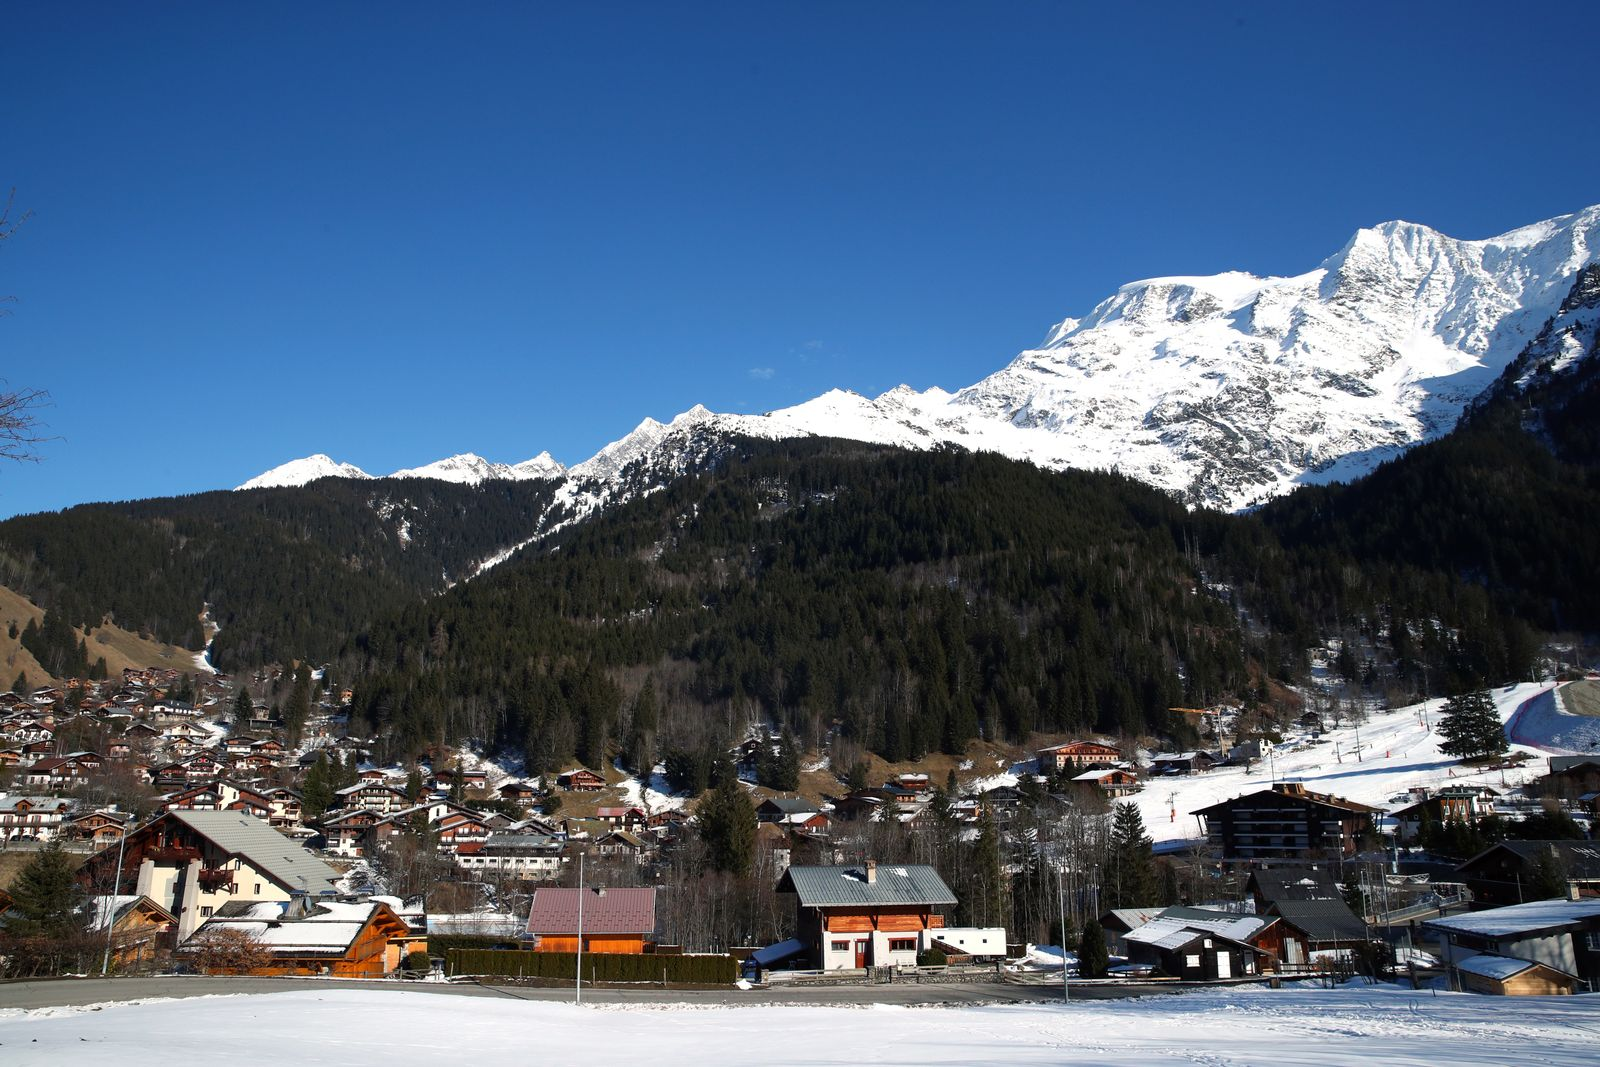 Five British nationals including a child diagnosed with the coronavirus at the French Alpine resort of Les Contamines-Montjoie